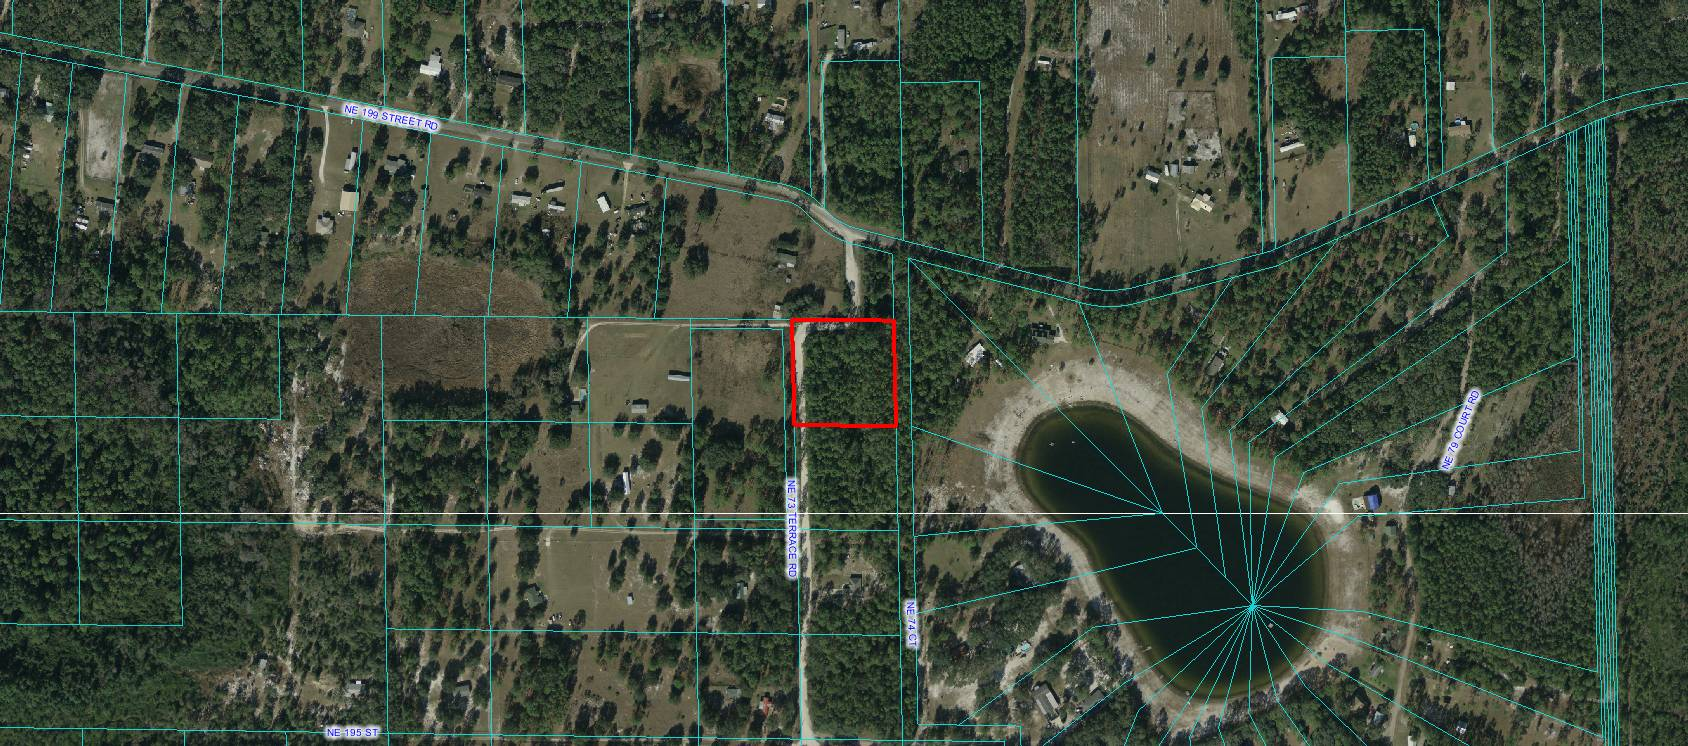 Mylandbaron Com 4 Acres In Citra Florida For Sale Cheapest Lots